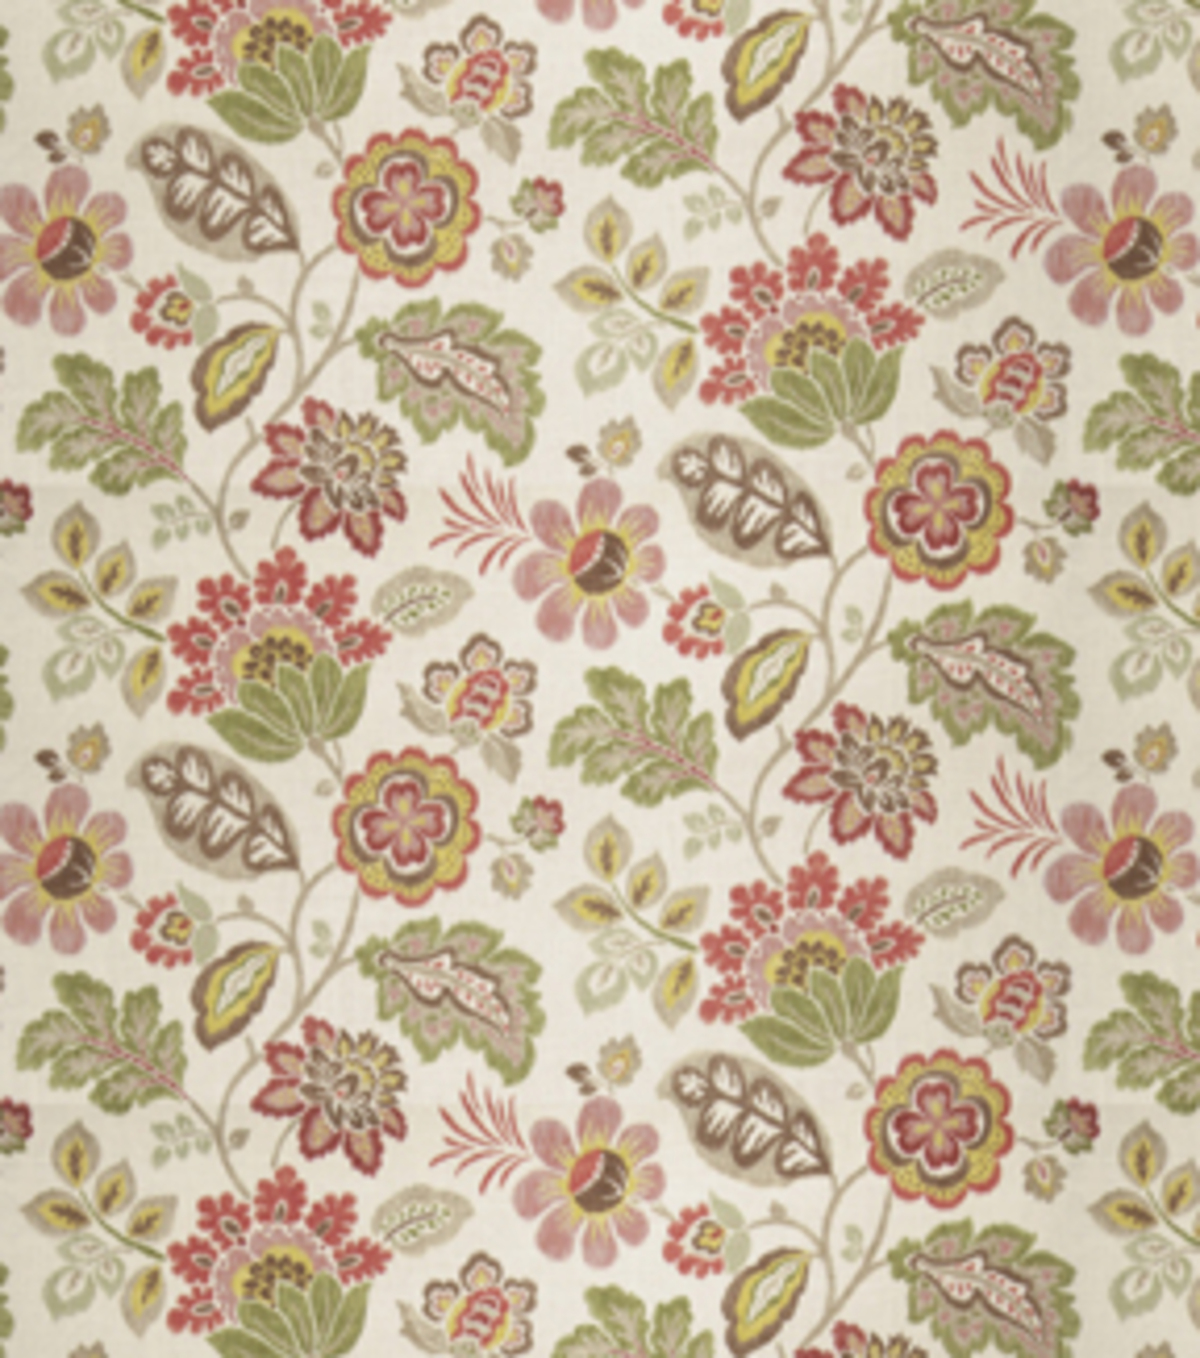 "Home Decor 8""x8"" Fabric Swatch-Eaton Square Inheritance Garden"